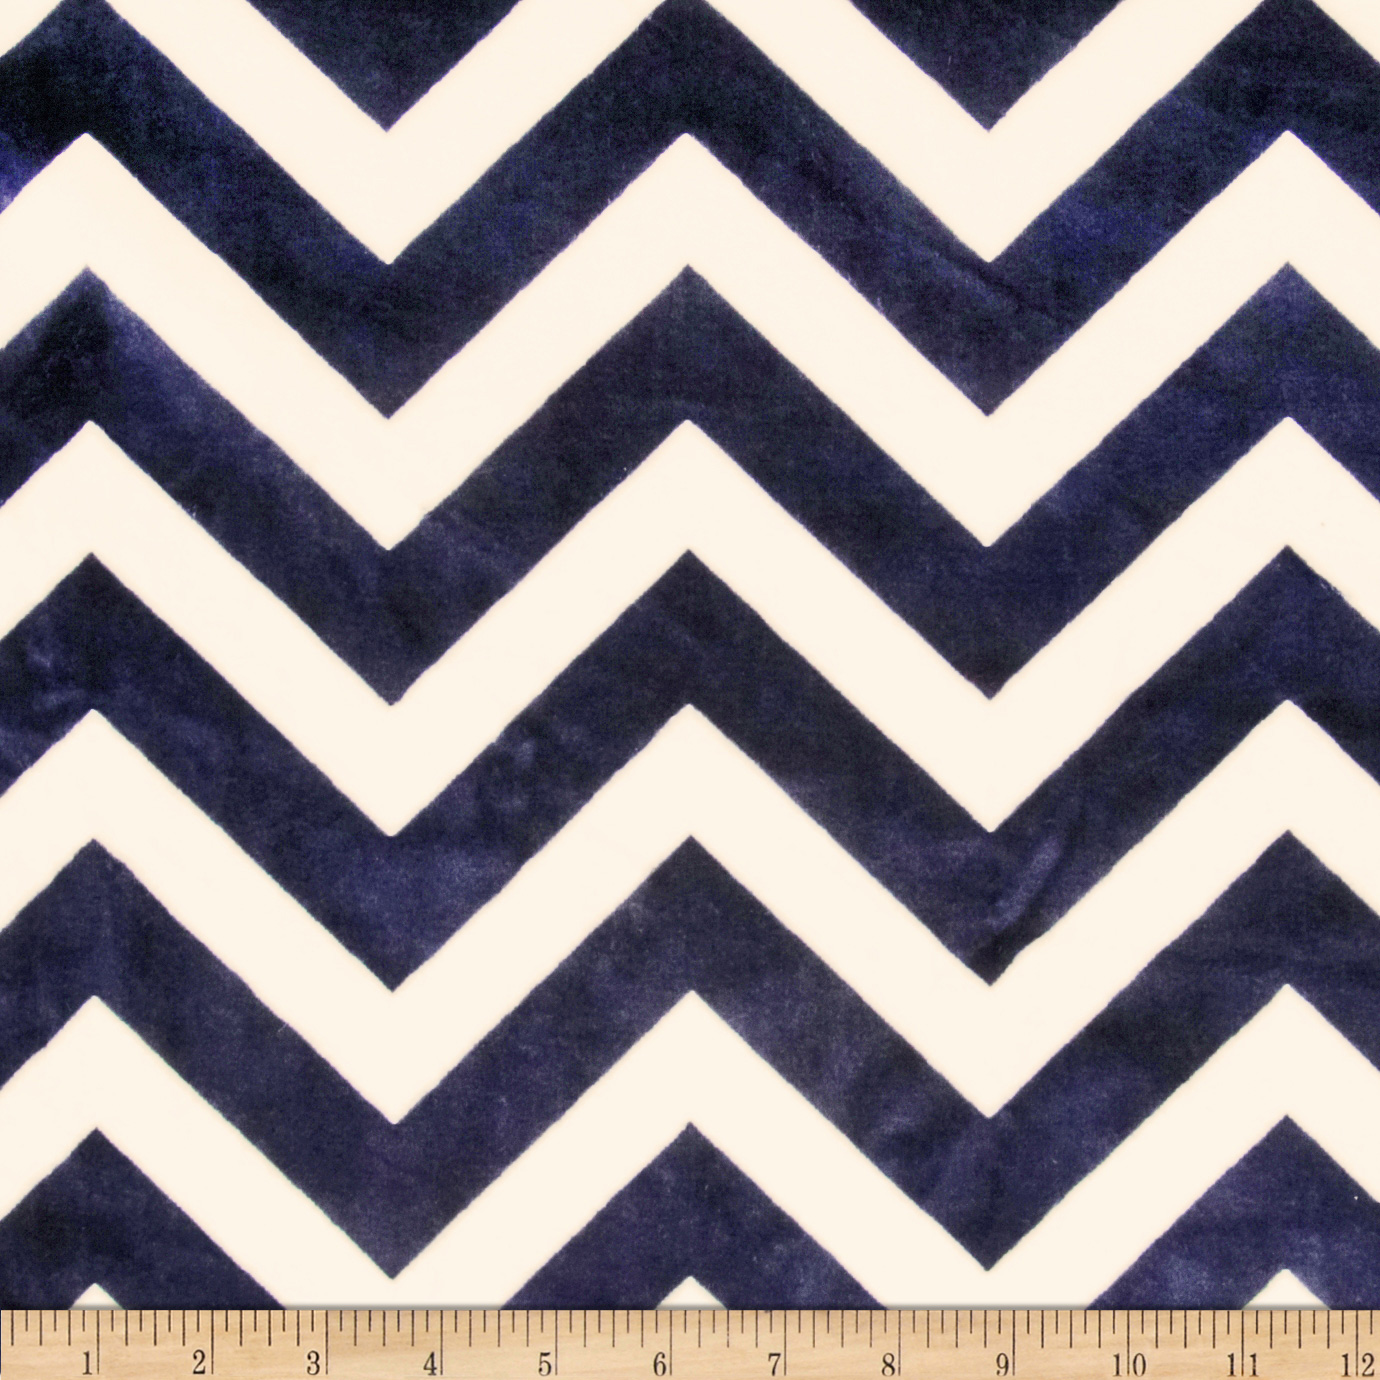 Minky Cuddle Chevron Navy/Ivory Fabric